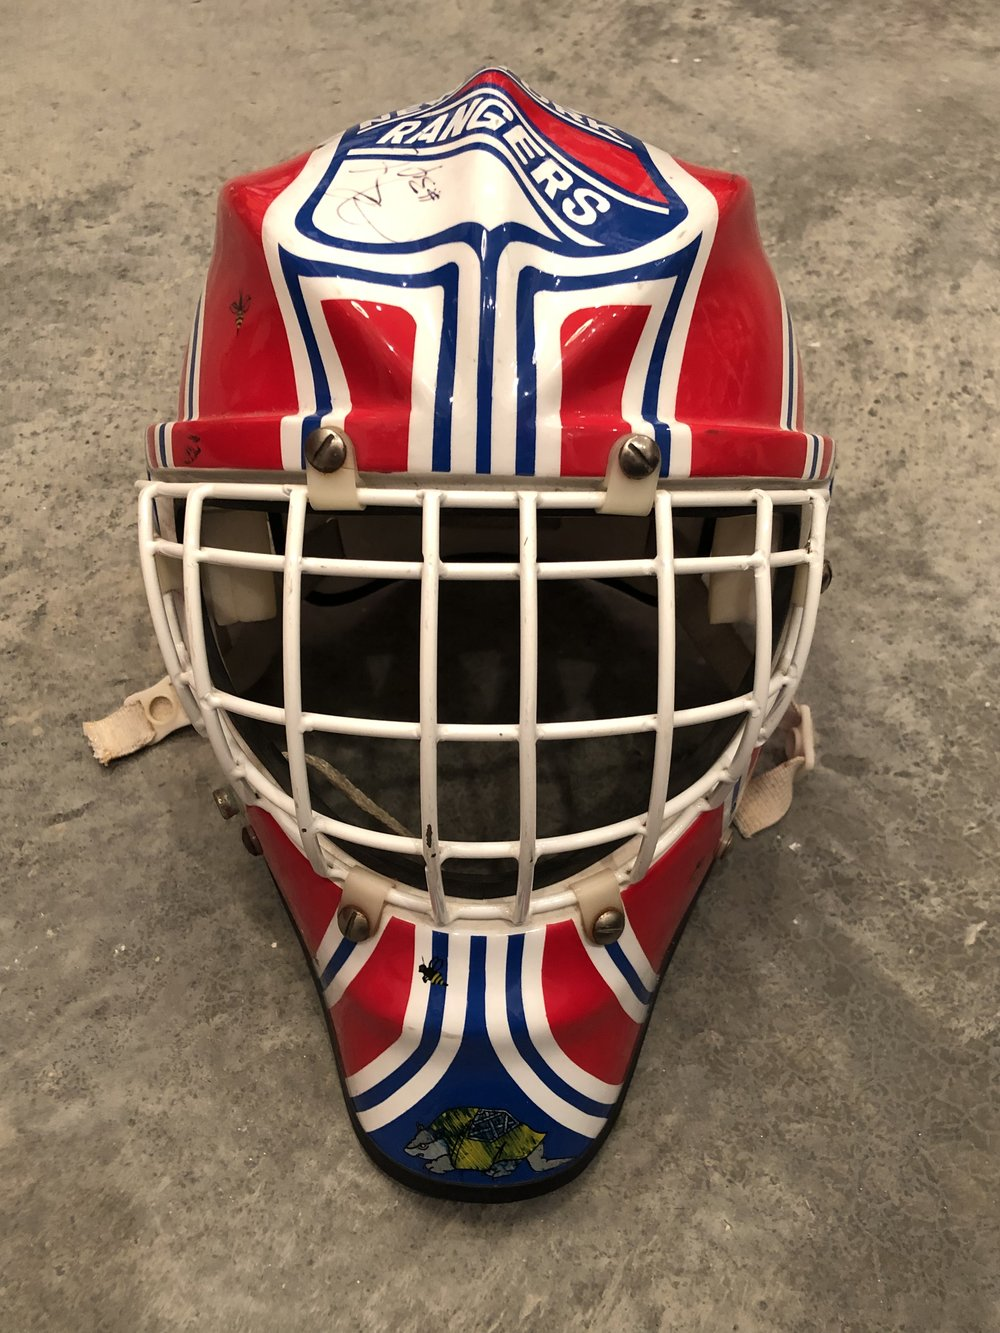 192-93 New York Rangers game worn mask